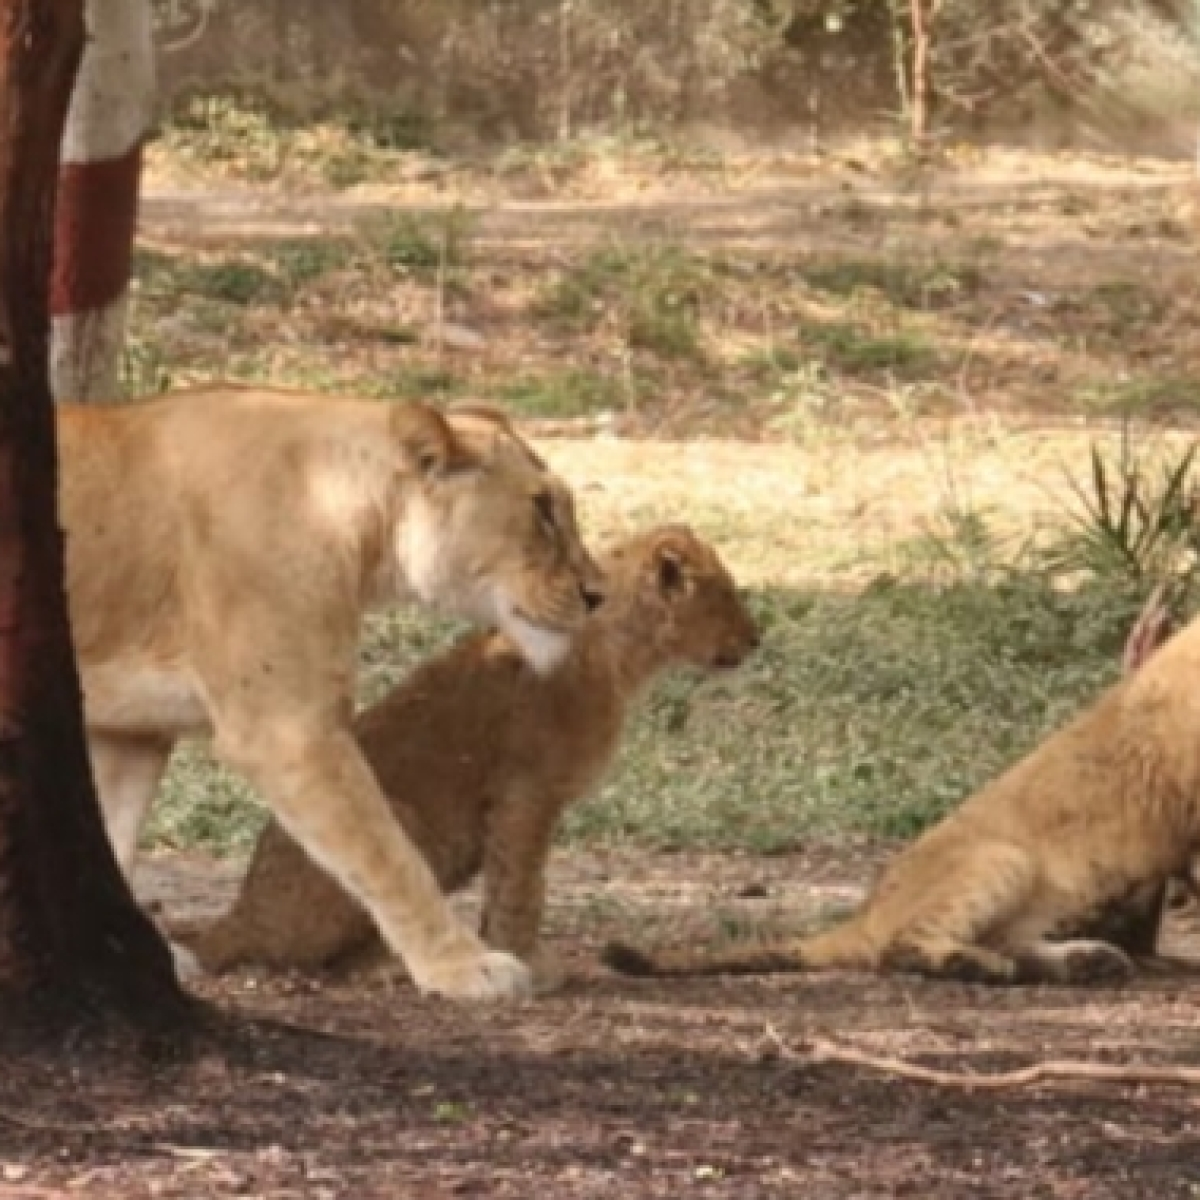 Indore zoo-keepers taking care to keep inmates cool amid high temperature